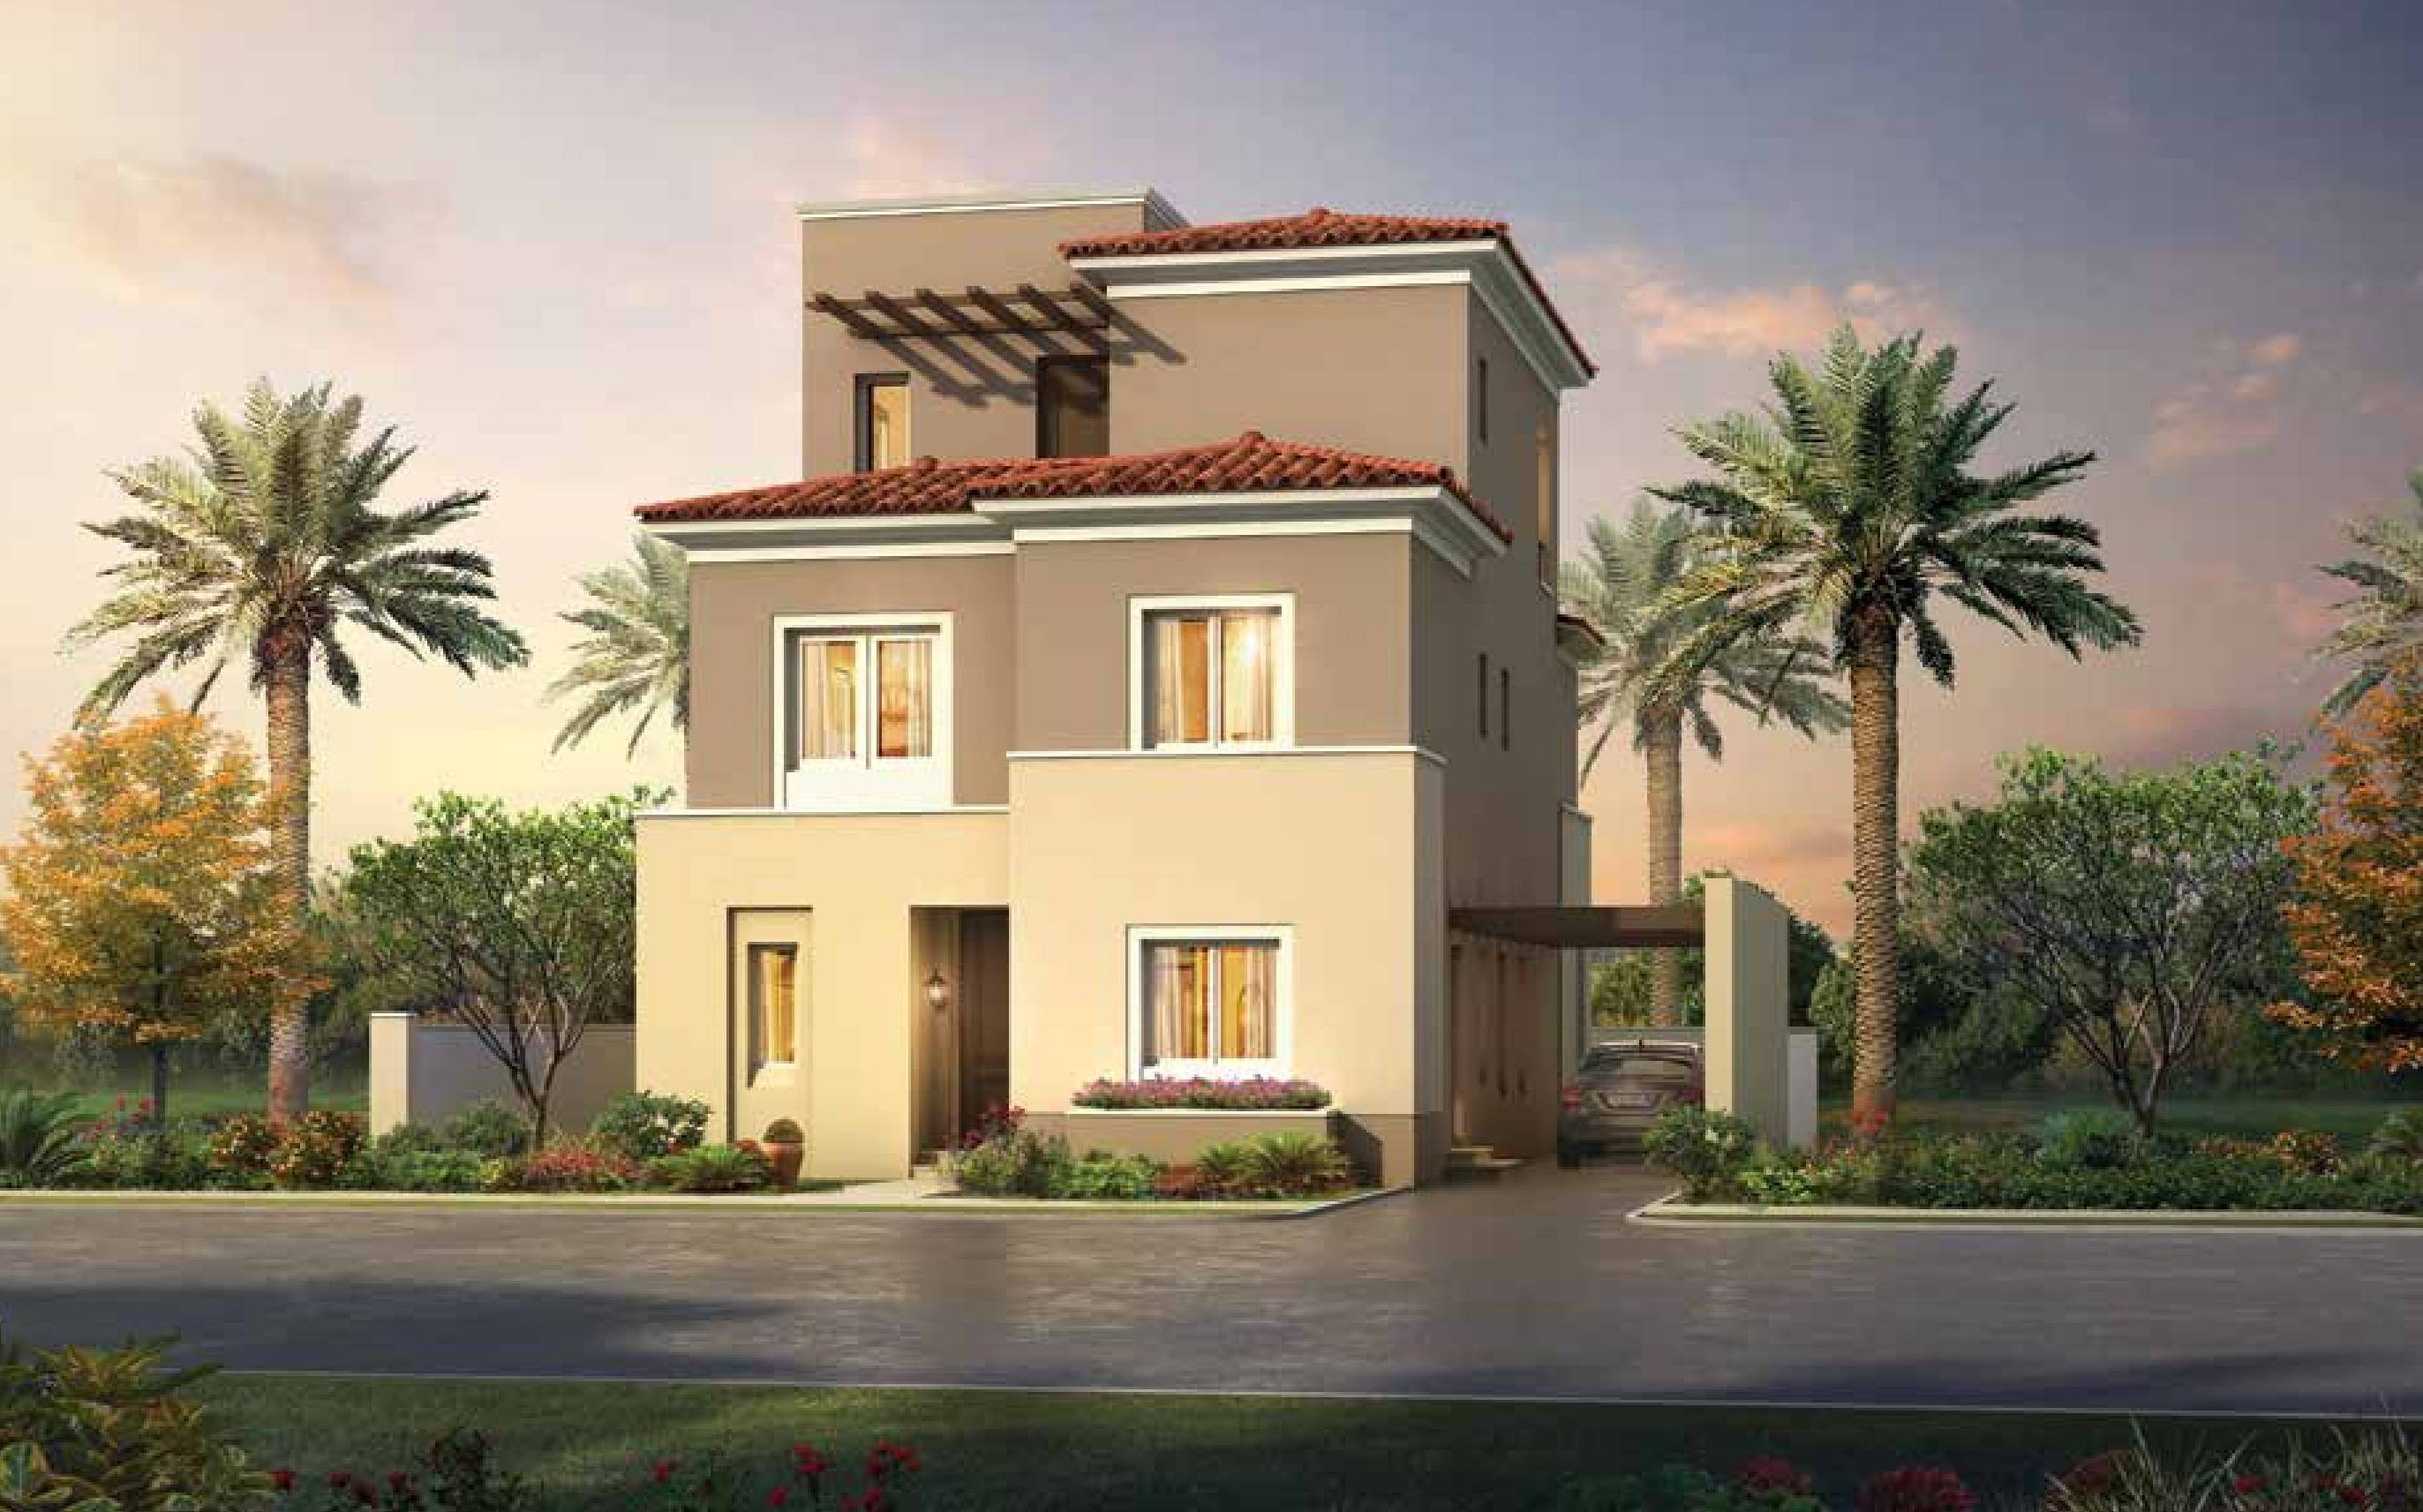 196-villa-16-with-penthouse